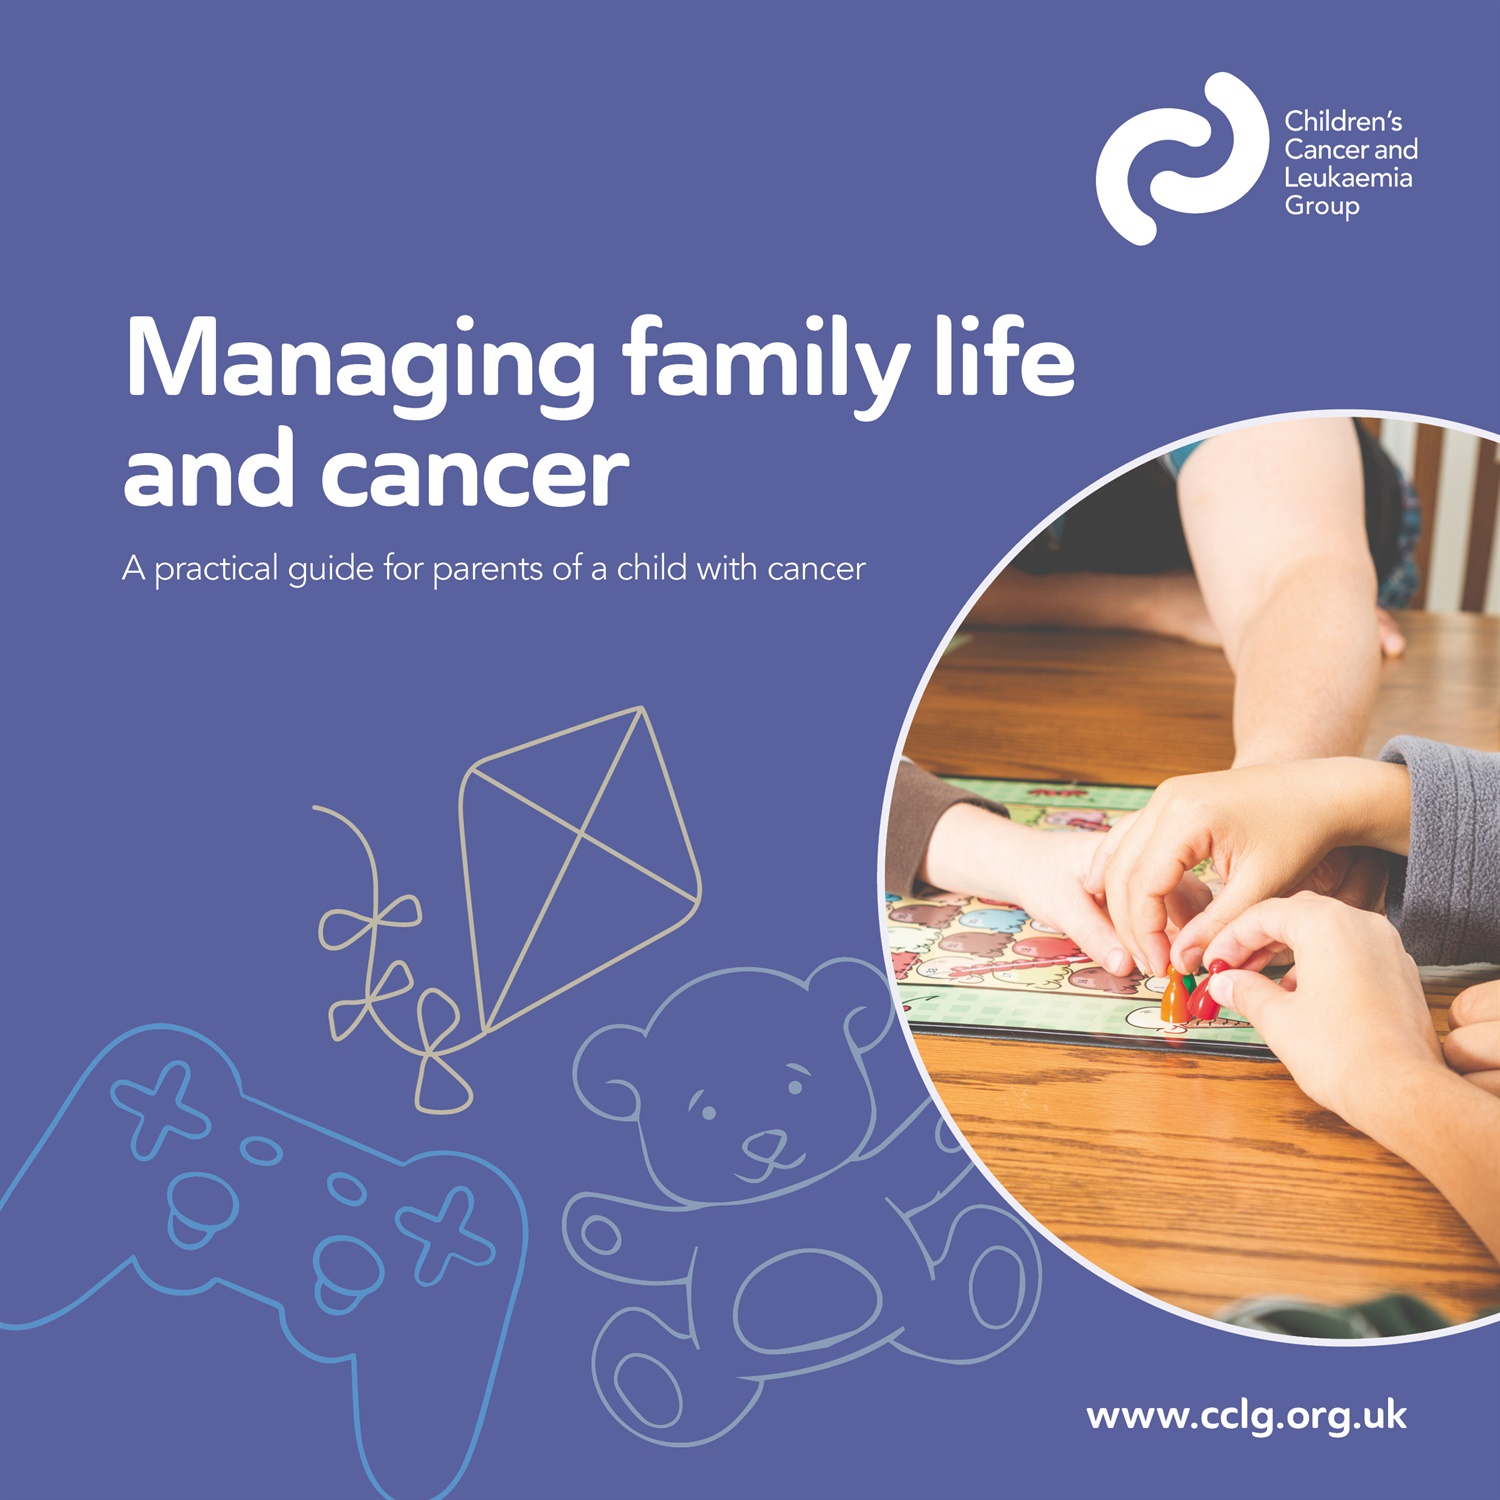 Managing family life and cancer